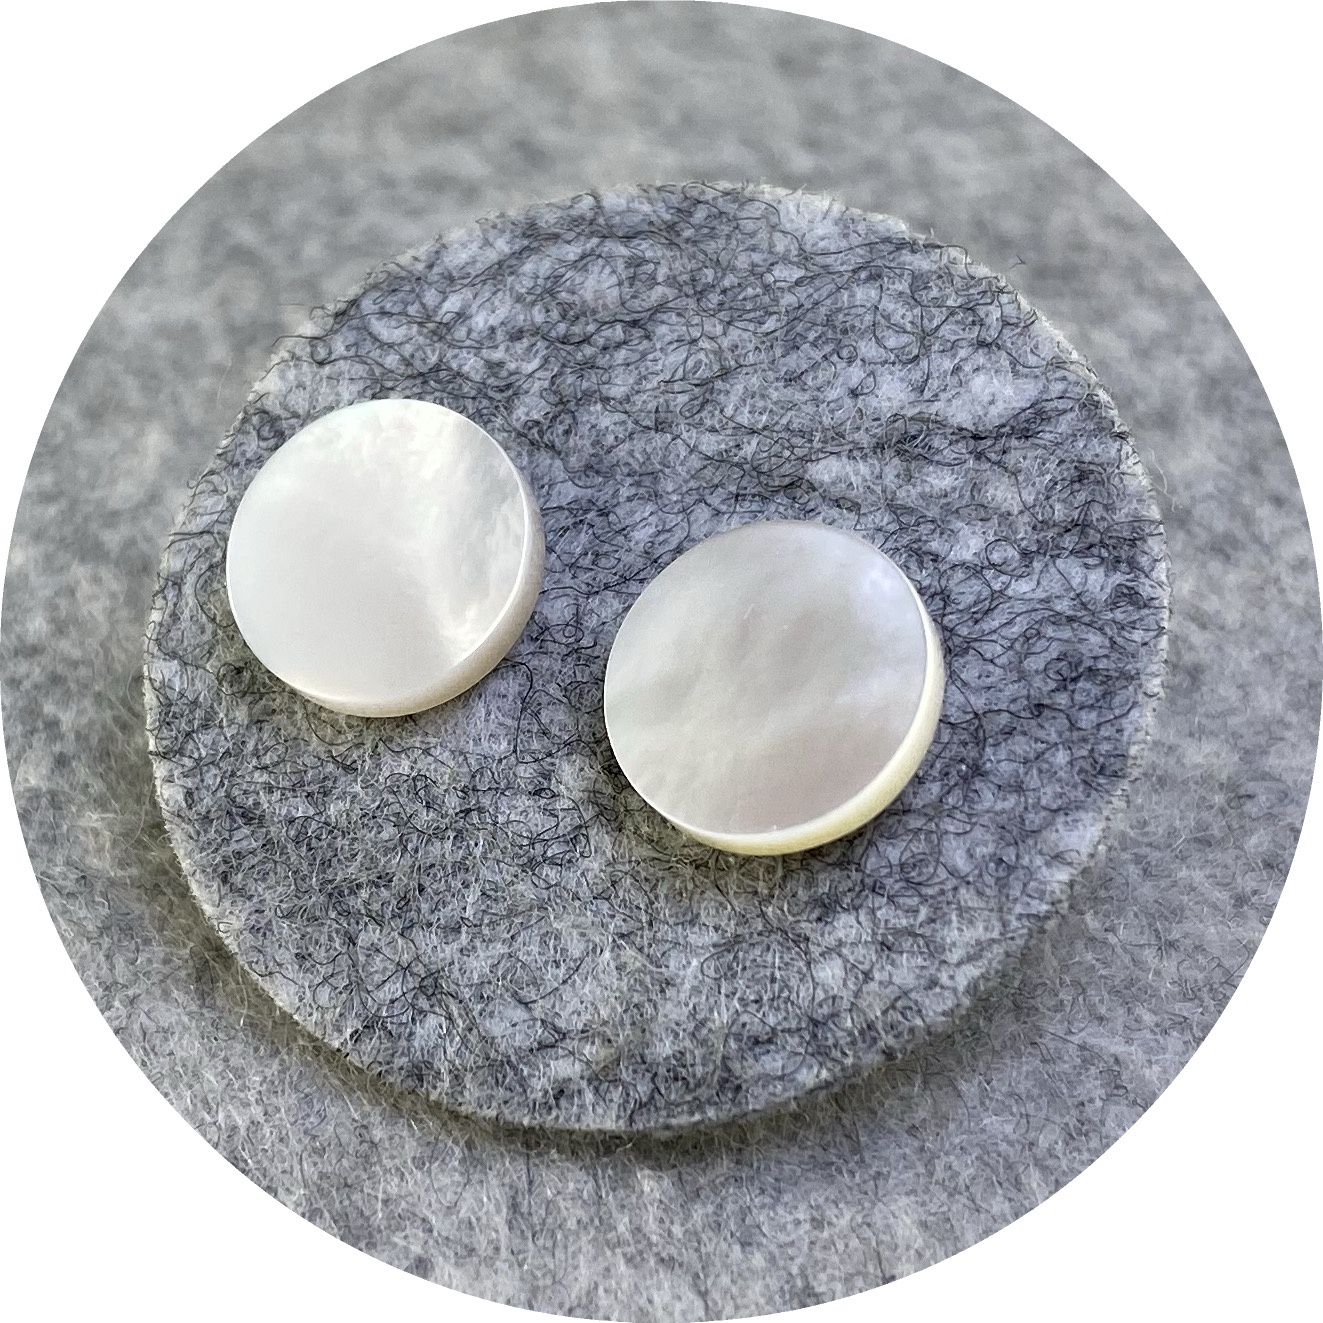 Laura Eyles - 'Mother of Pearl Small Round Studs', 925 silver